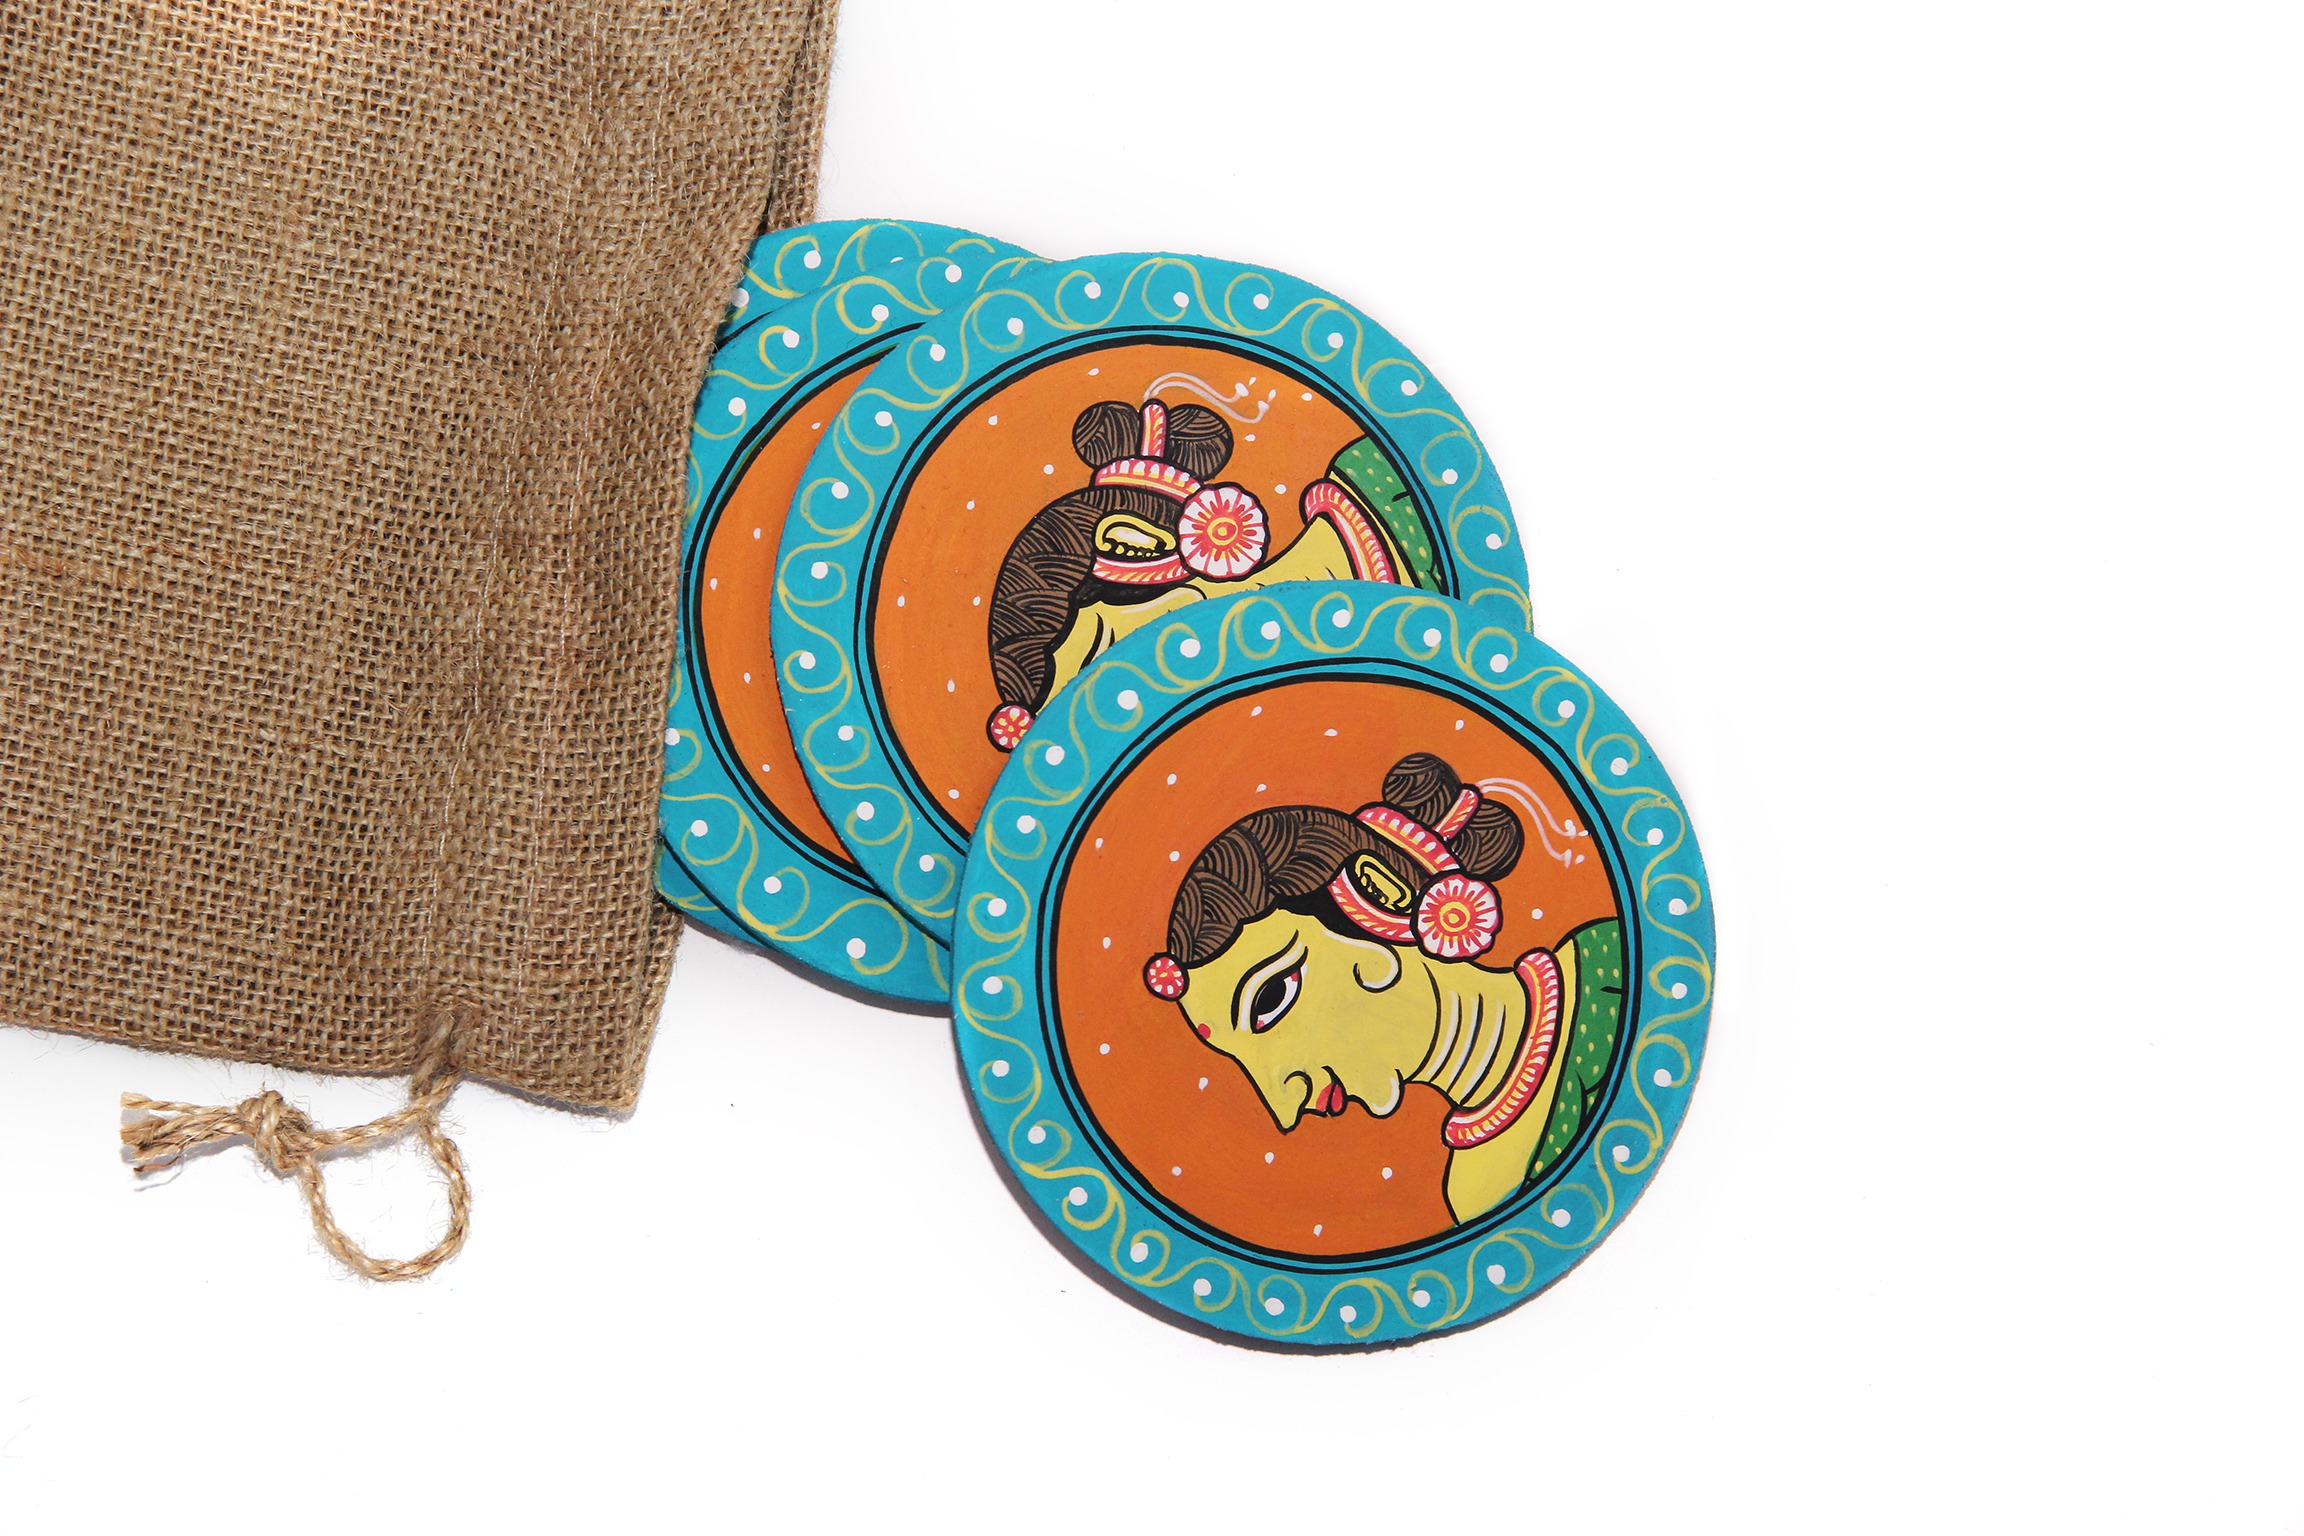 Woman Face: Pattachitra Handmade Coasters (Set of 4)